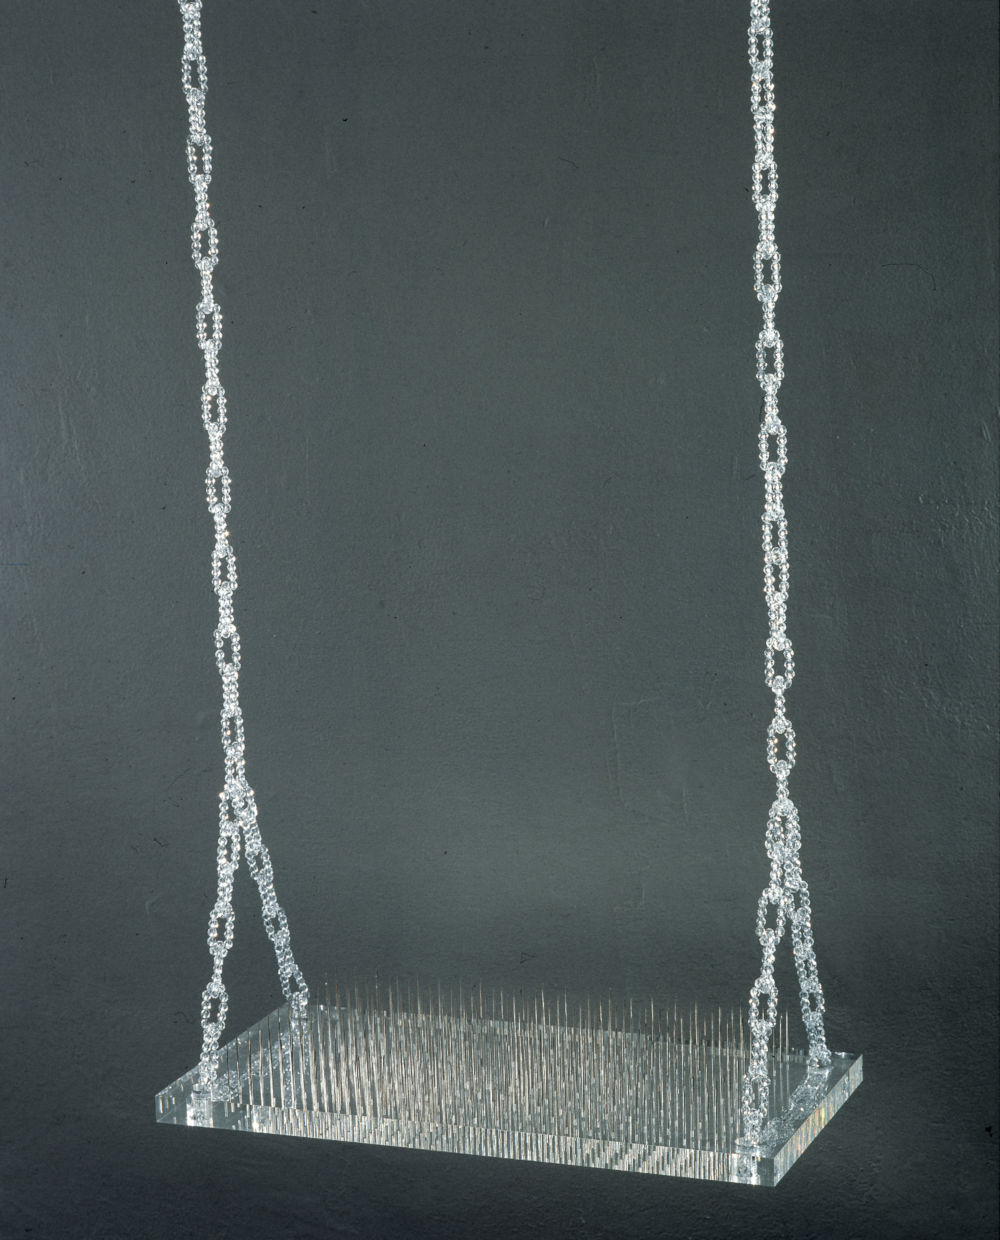 UNTITLED (SWING)